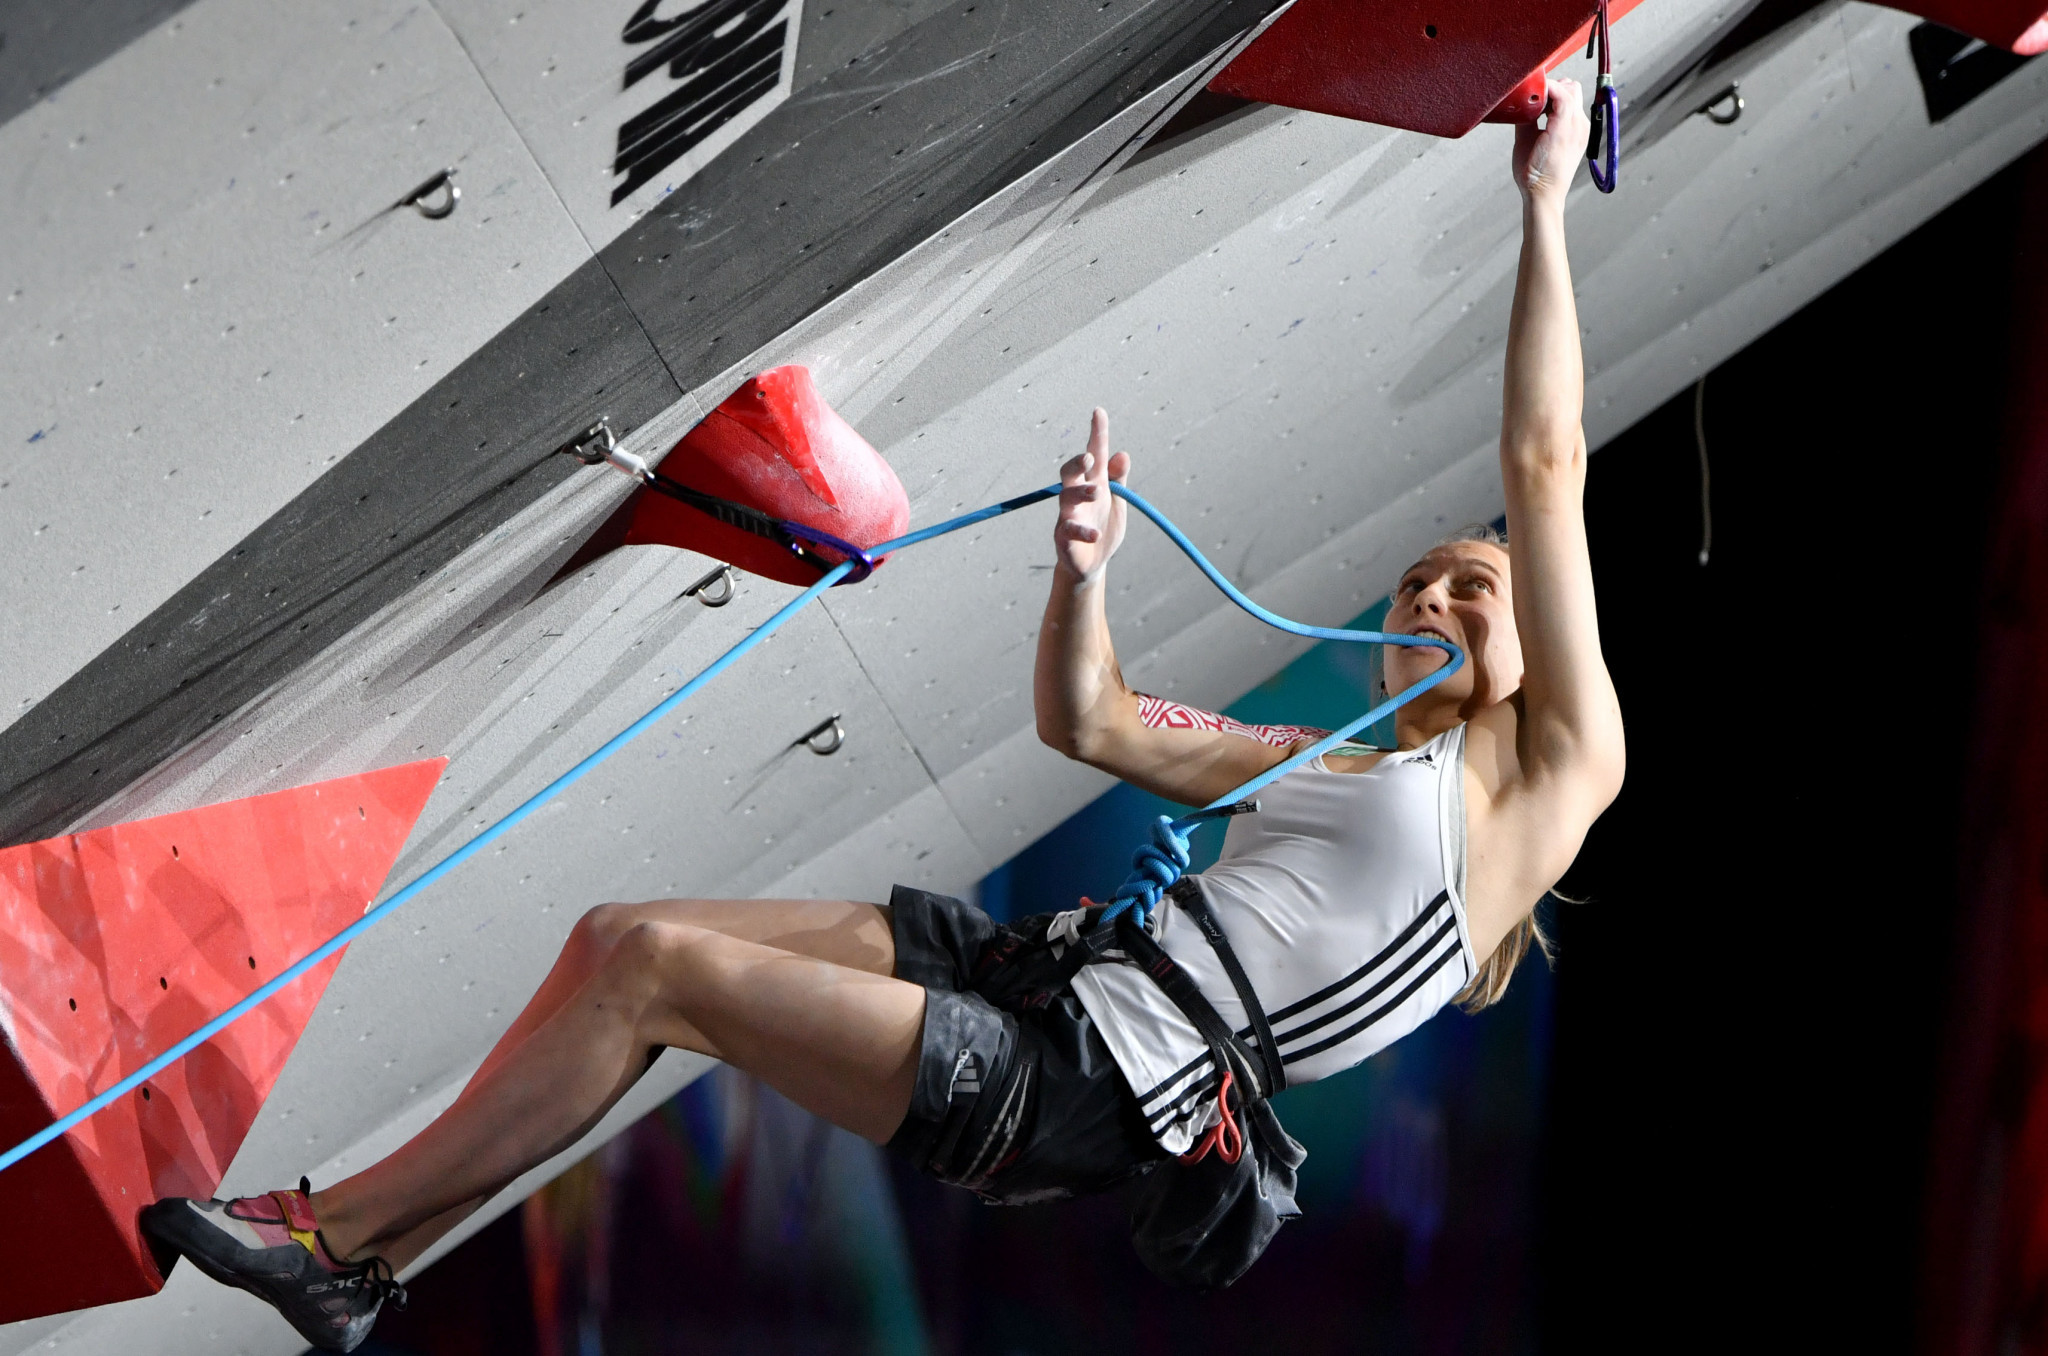 Slovenia's Janja Garnbret won her third successive bouldering gold medal at the IFSC World Cup event in Chongqing ©Getty Images